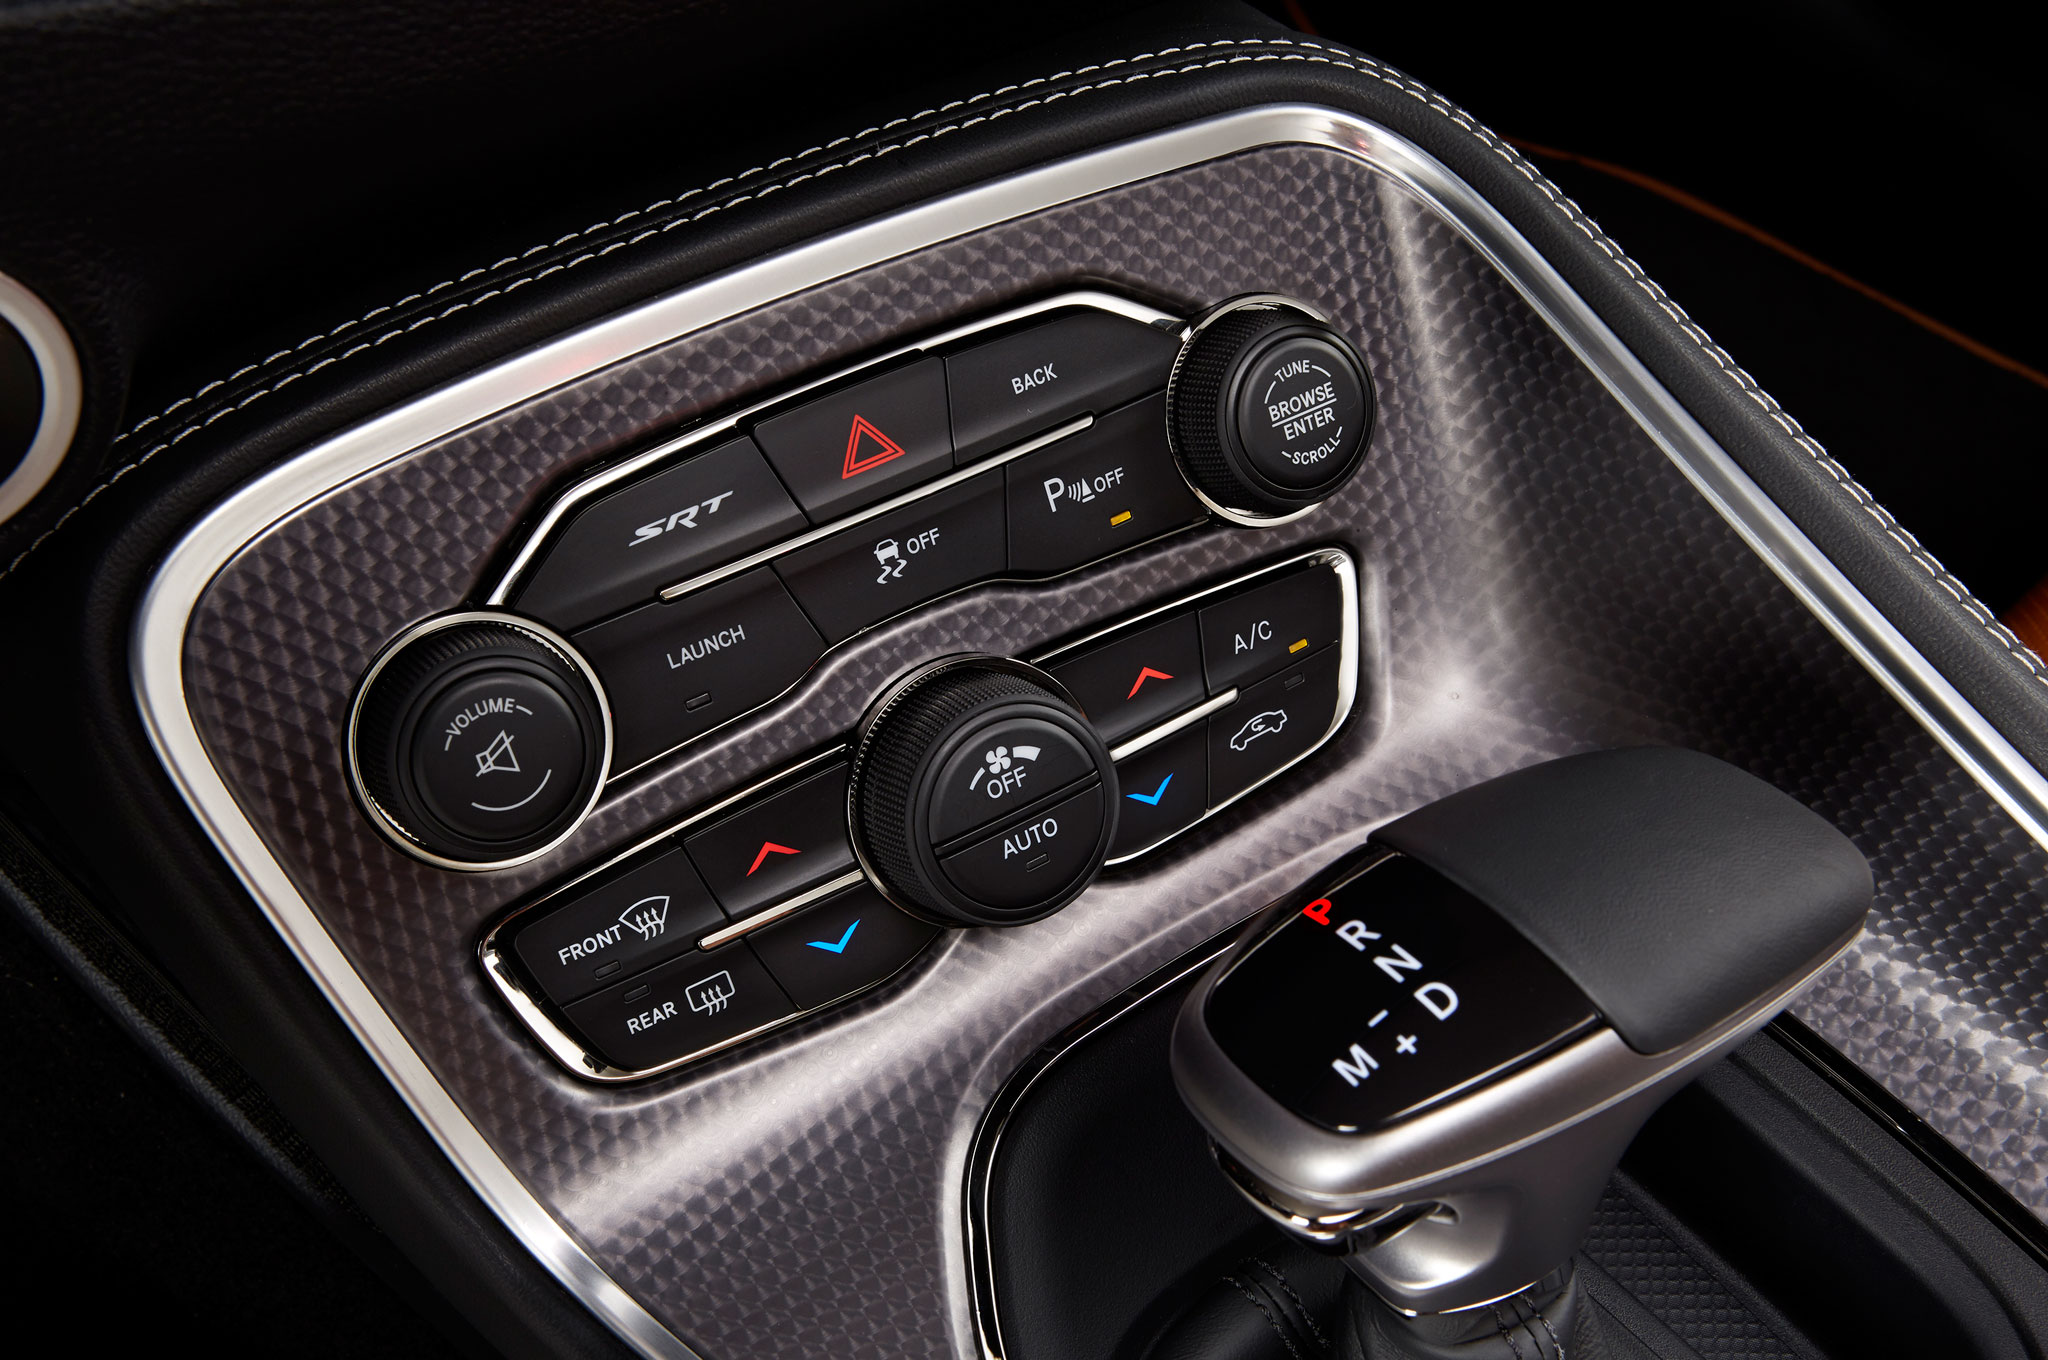 2015 Dodge Challenger Head Unit and Control